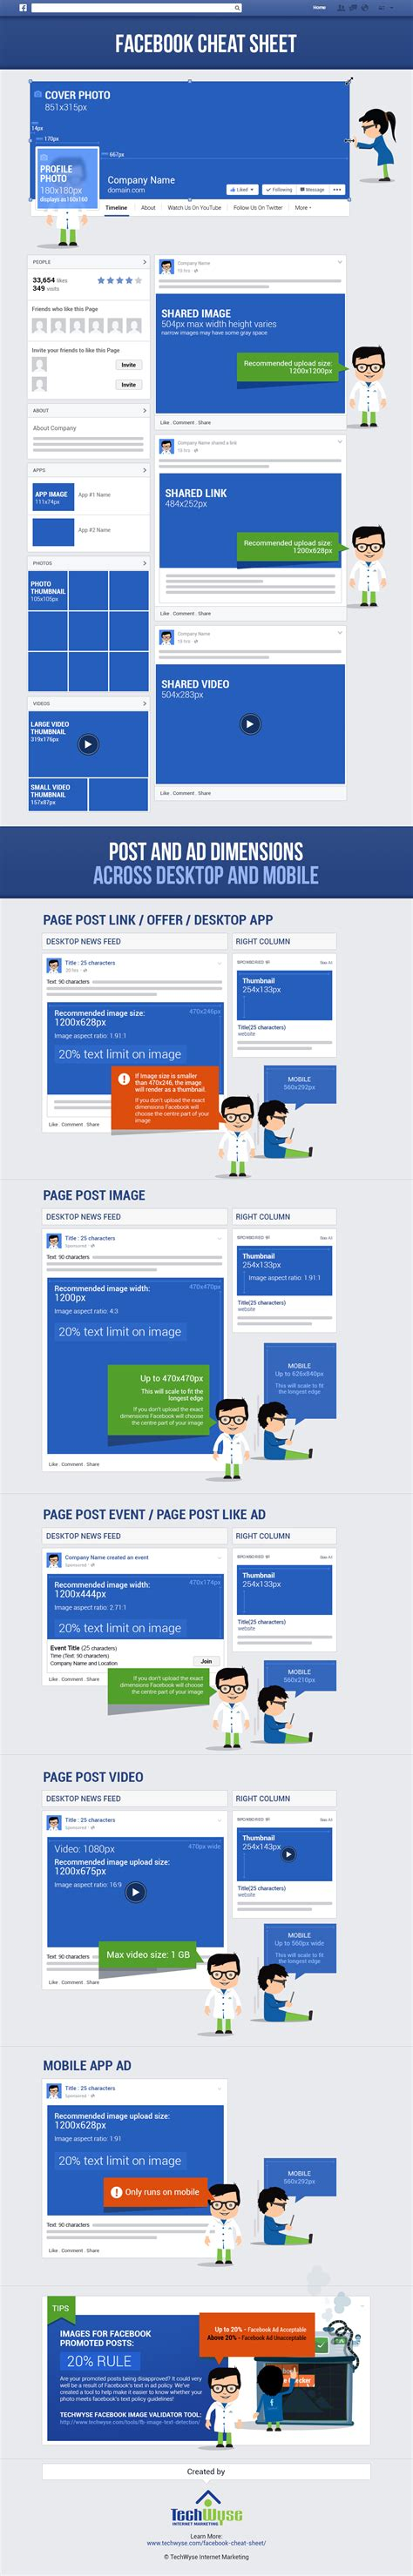 design home cheats facebook facebook cheat sheet image size and dimensions